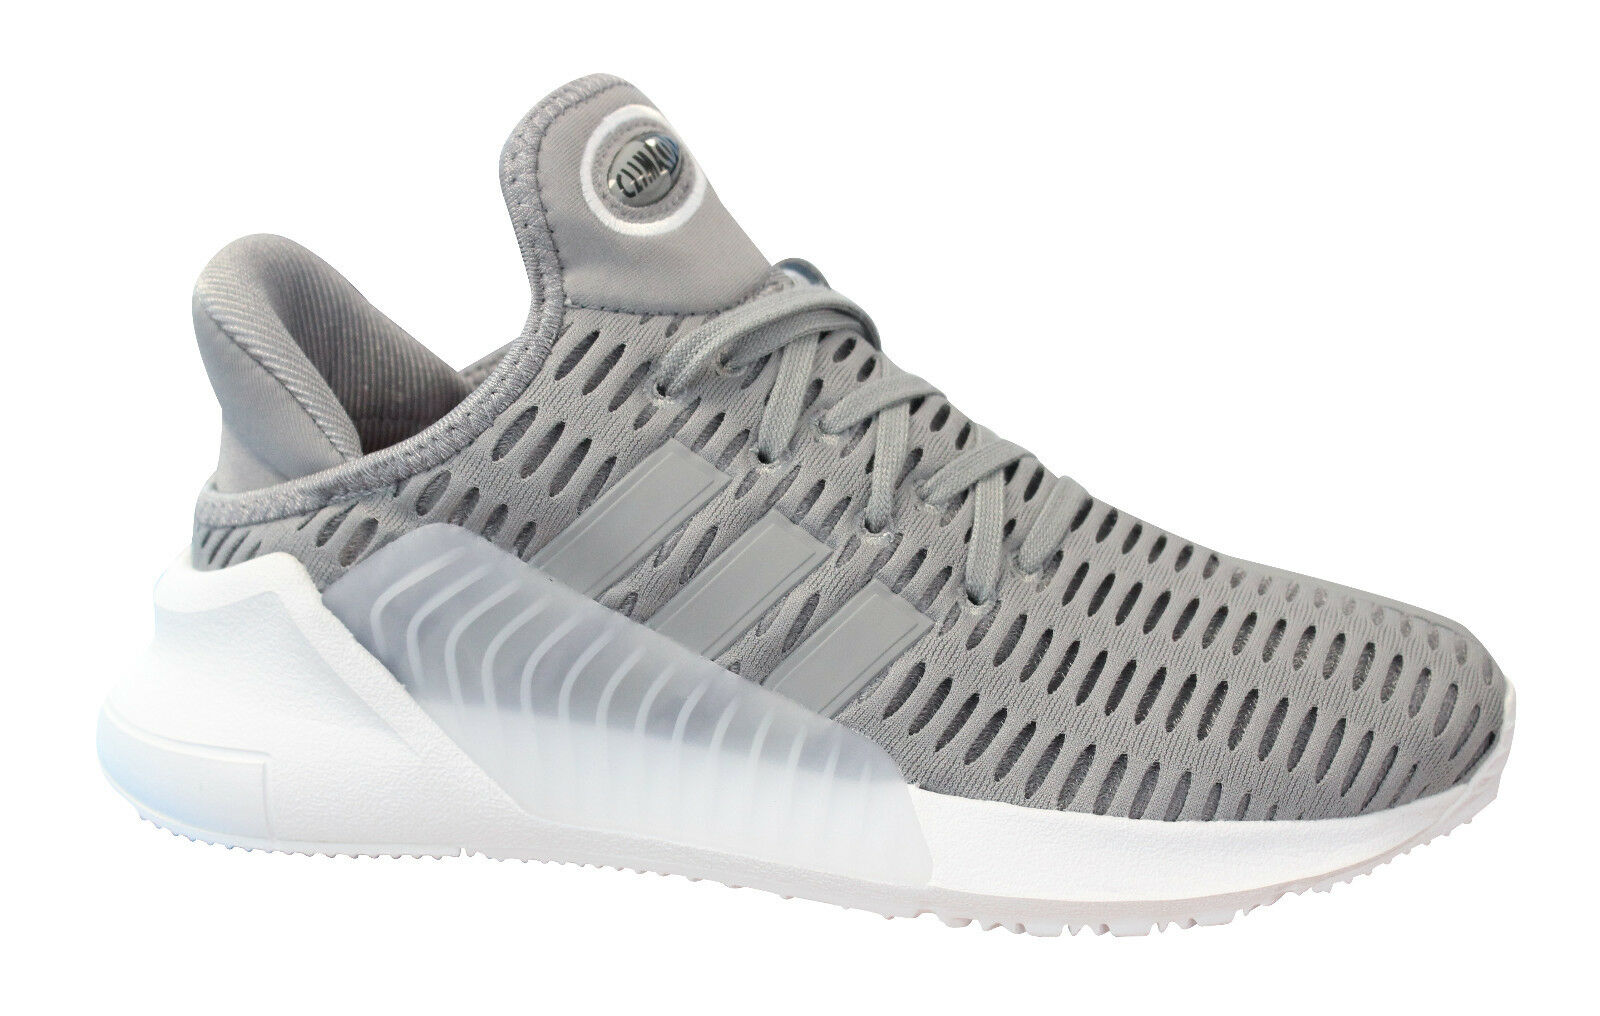 Adidas Climacool Unisex Trainers Lace Up Running Shoes Textile Grey BY9289 BY9289 Grey U31 5f03e7